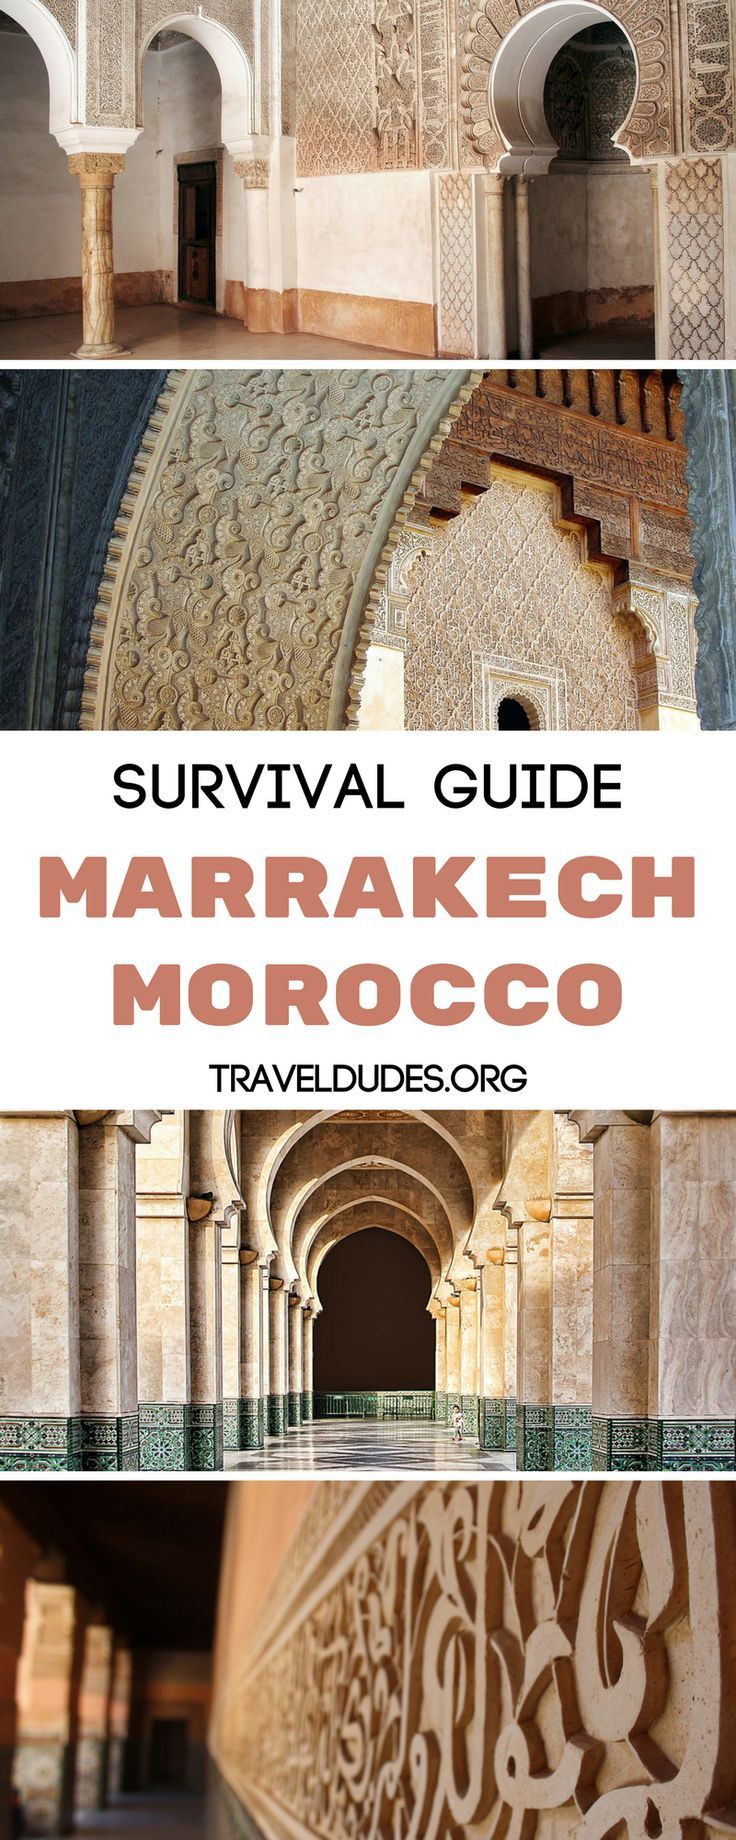 Travel to Paradise in Marrakech, Morocco, but not without these survival tips. Take in the amazing architecture, explore the many markets throughout the city, and grub on the best street food. Make the most of these experiences by learning how to haggle or get around the city. | Travel Dudes Travel Community #Marrakech #Morocco